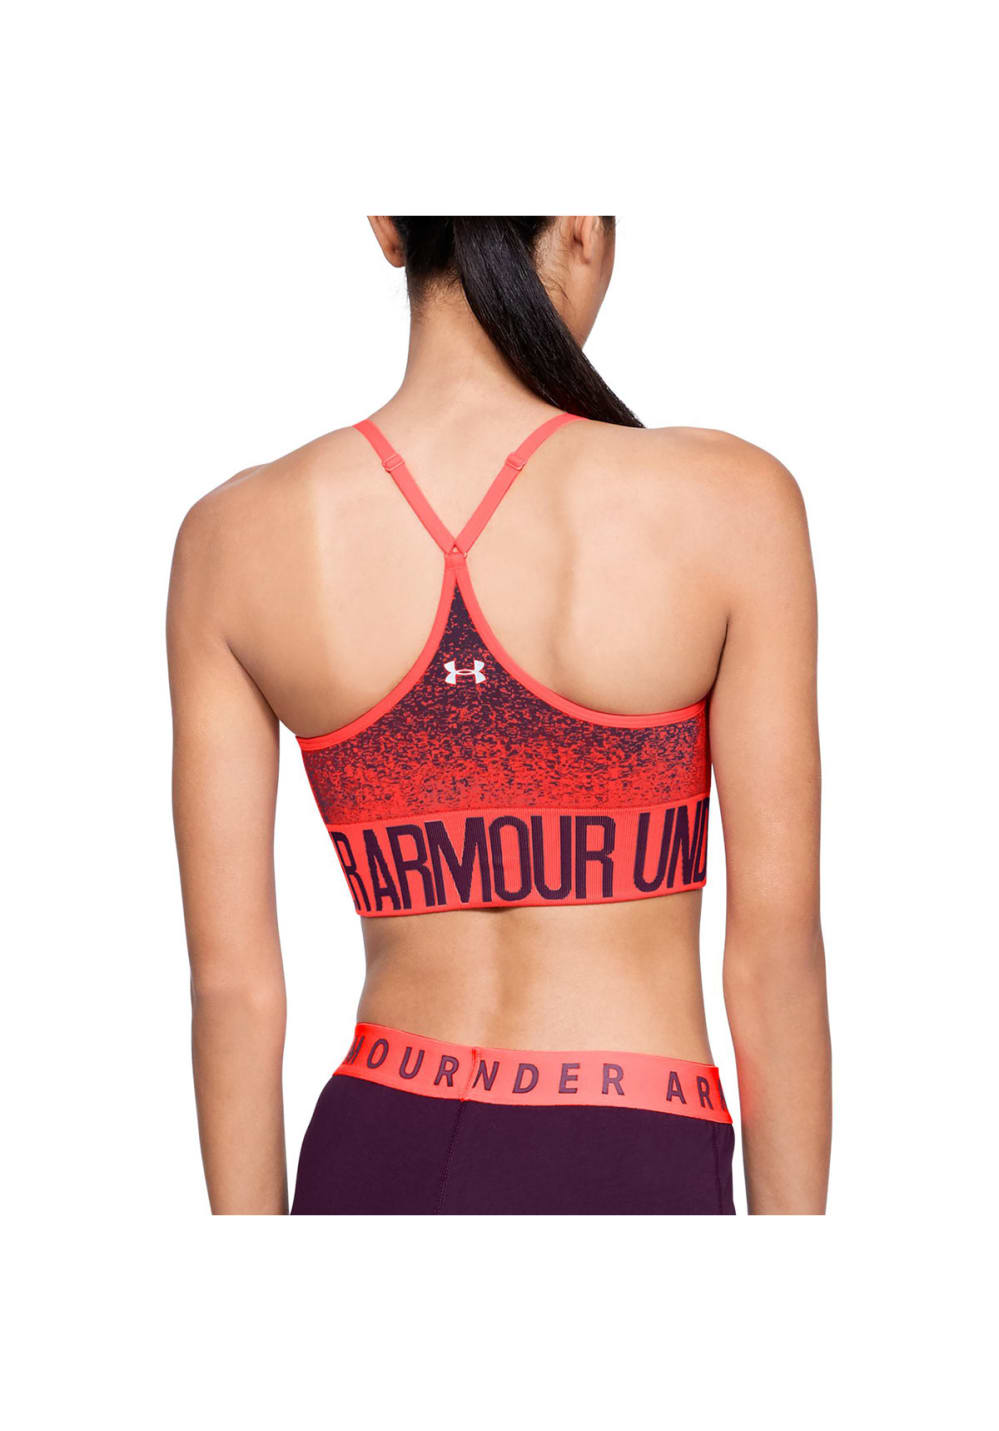 4fcd739e53 Next. -50%. This product is currently out of stock. Under Armour. Seamless  Ombre Novelty - Sport Bras for Women